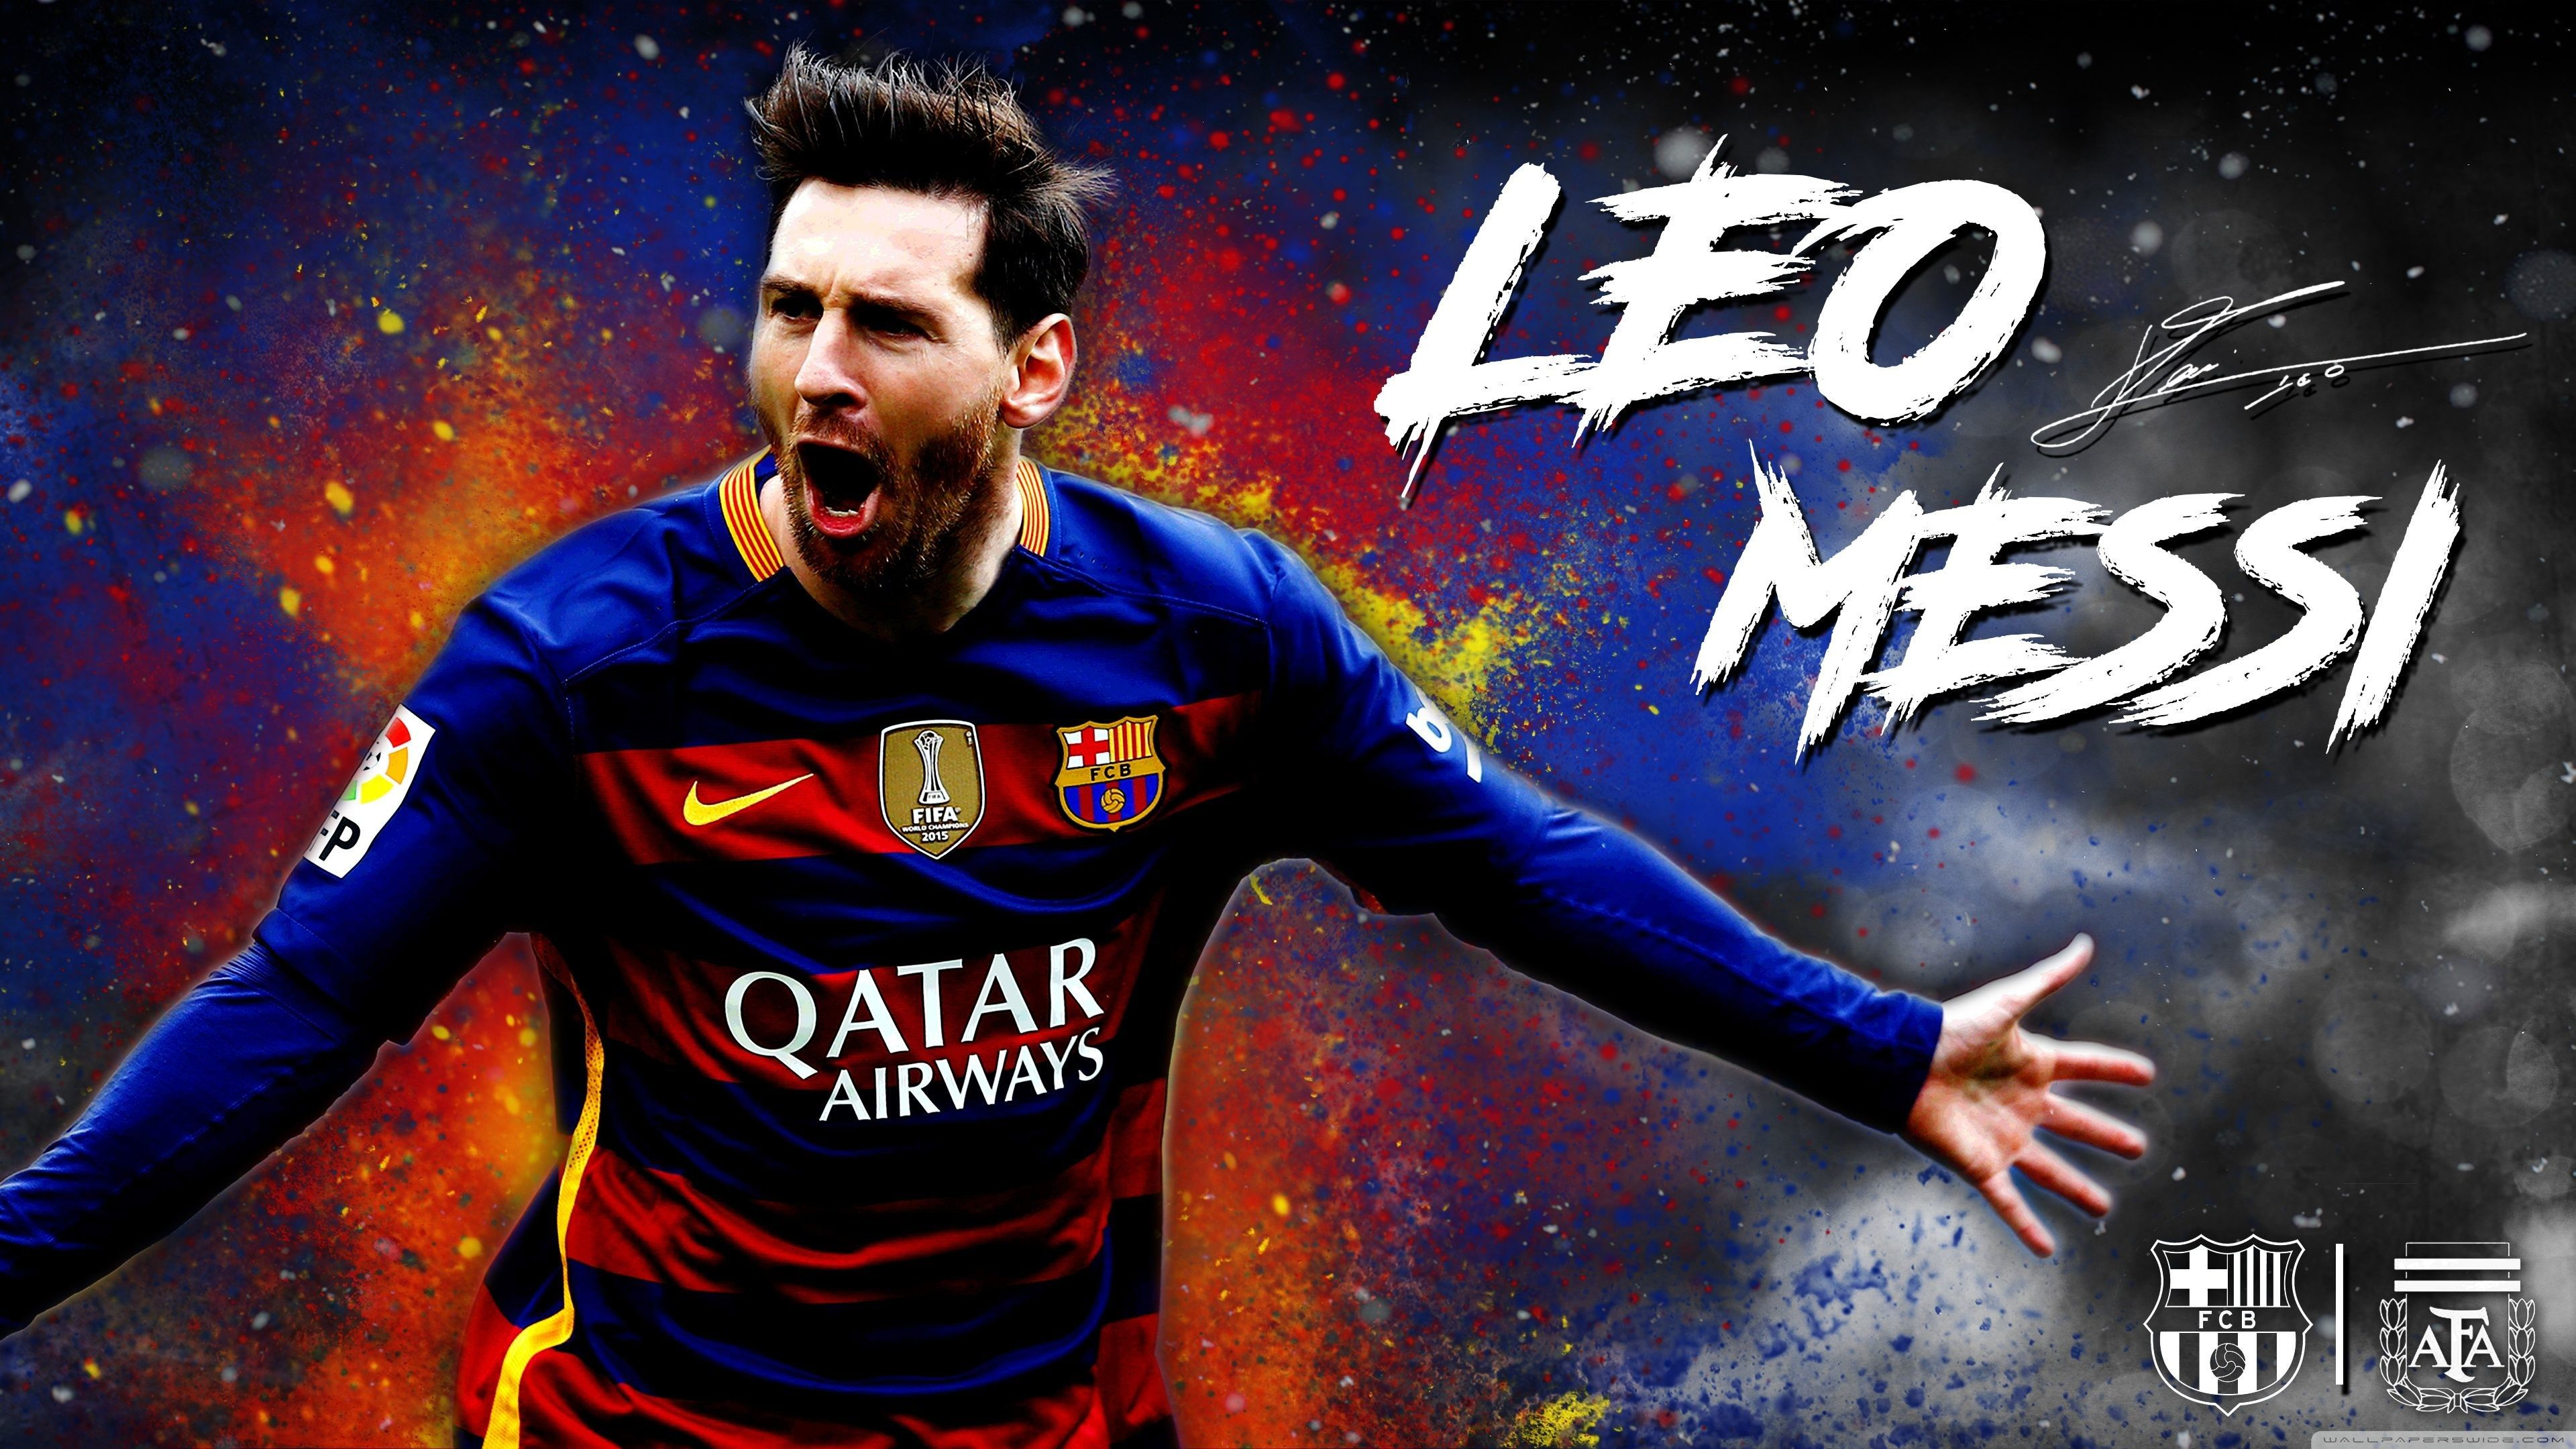 Messi Soccer Wallpapers Top Free Messi Soccer Backgrounds Wallpaperaccess